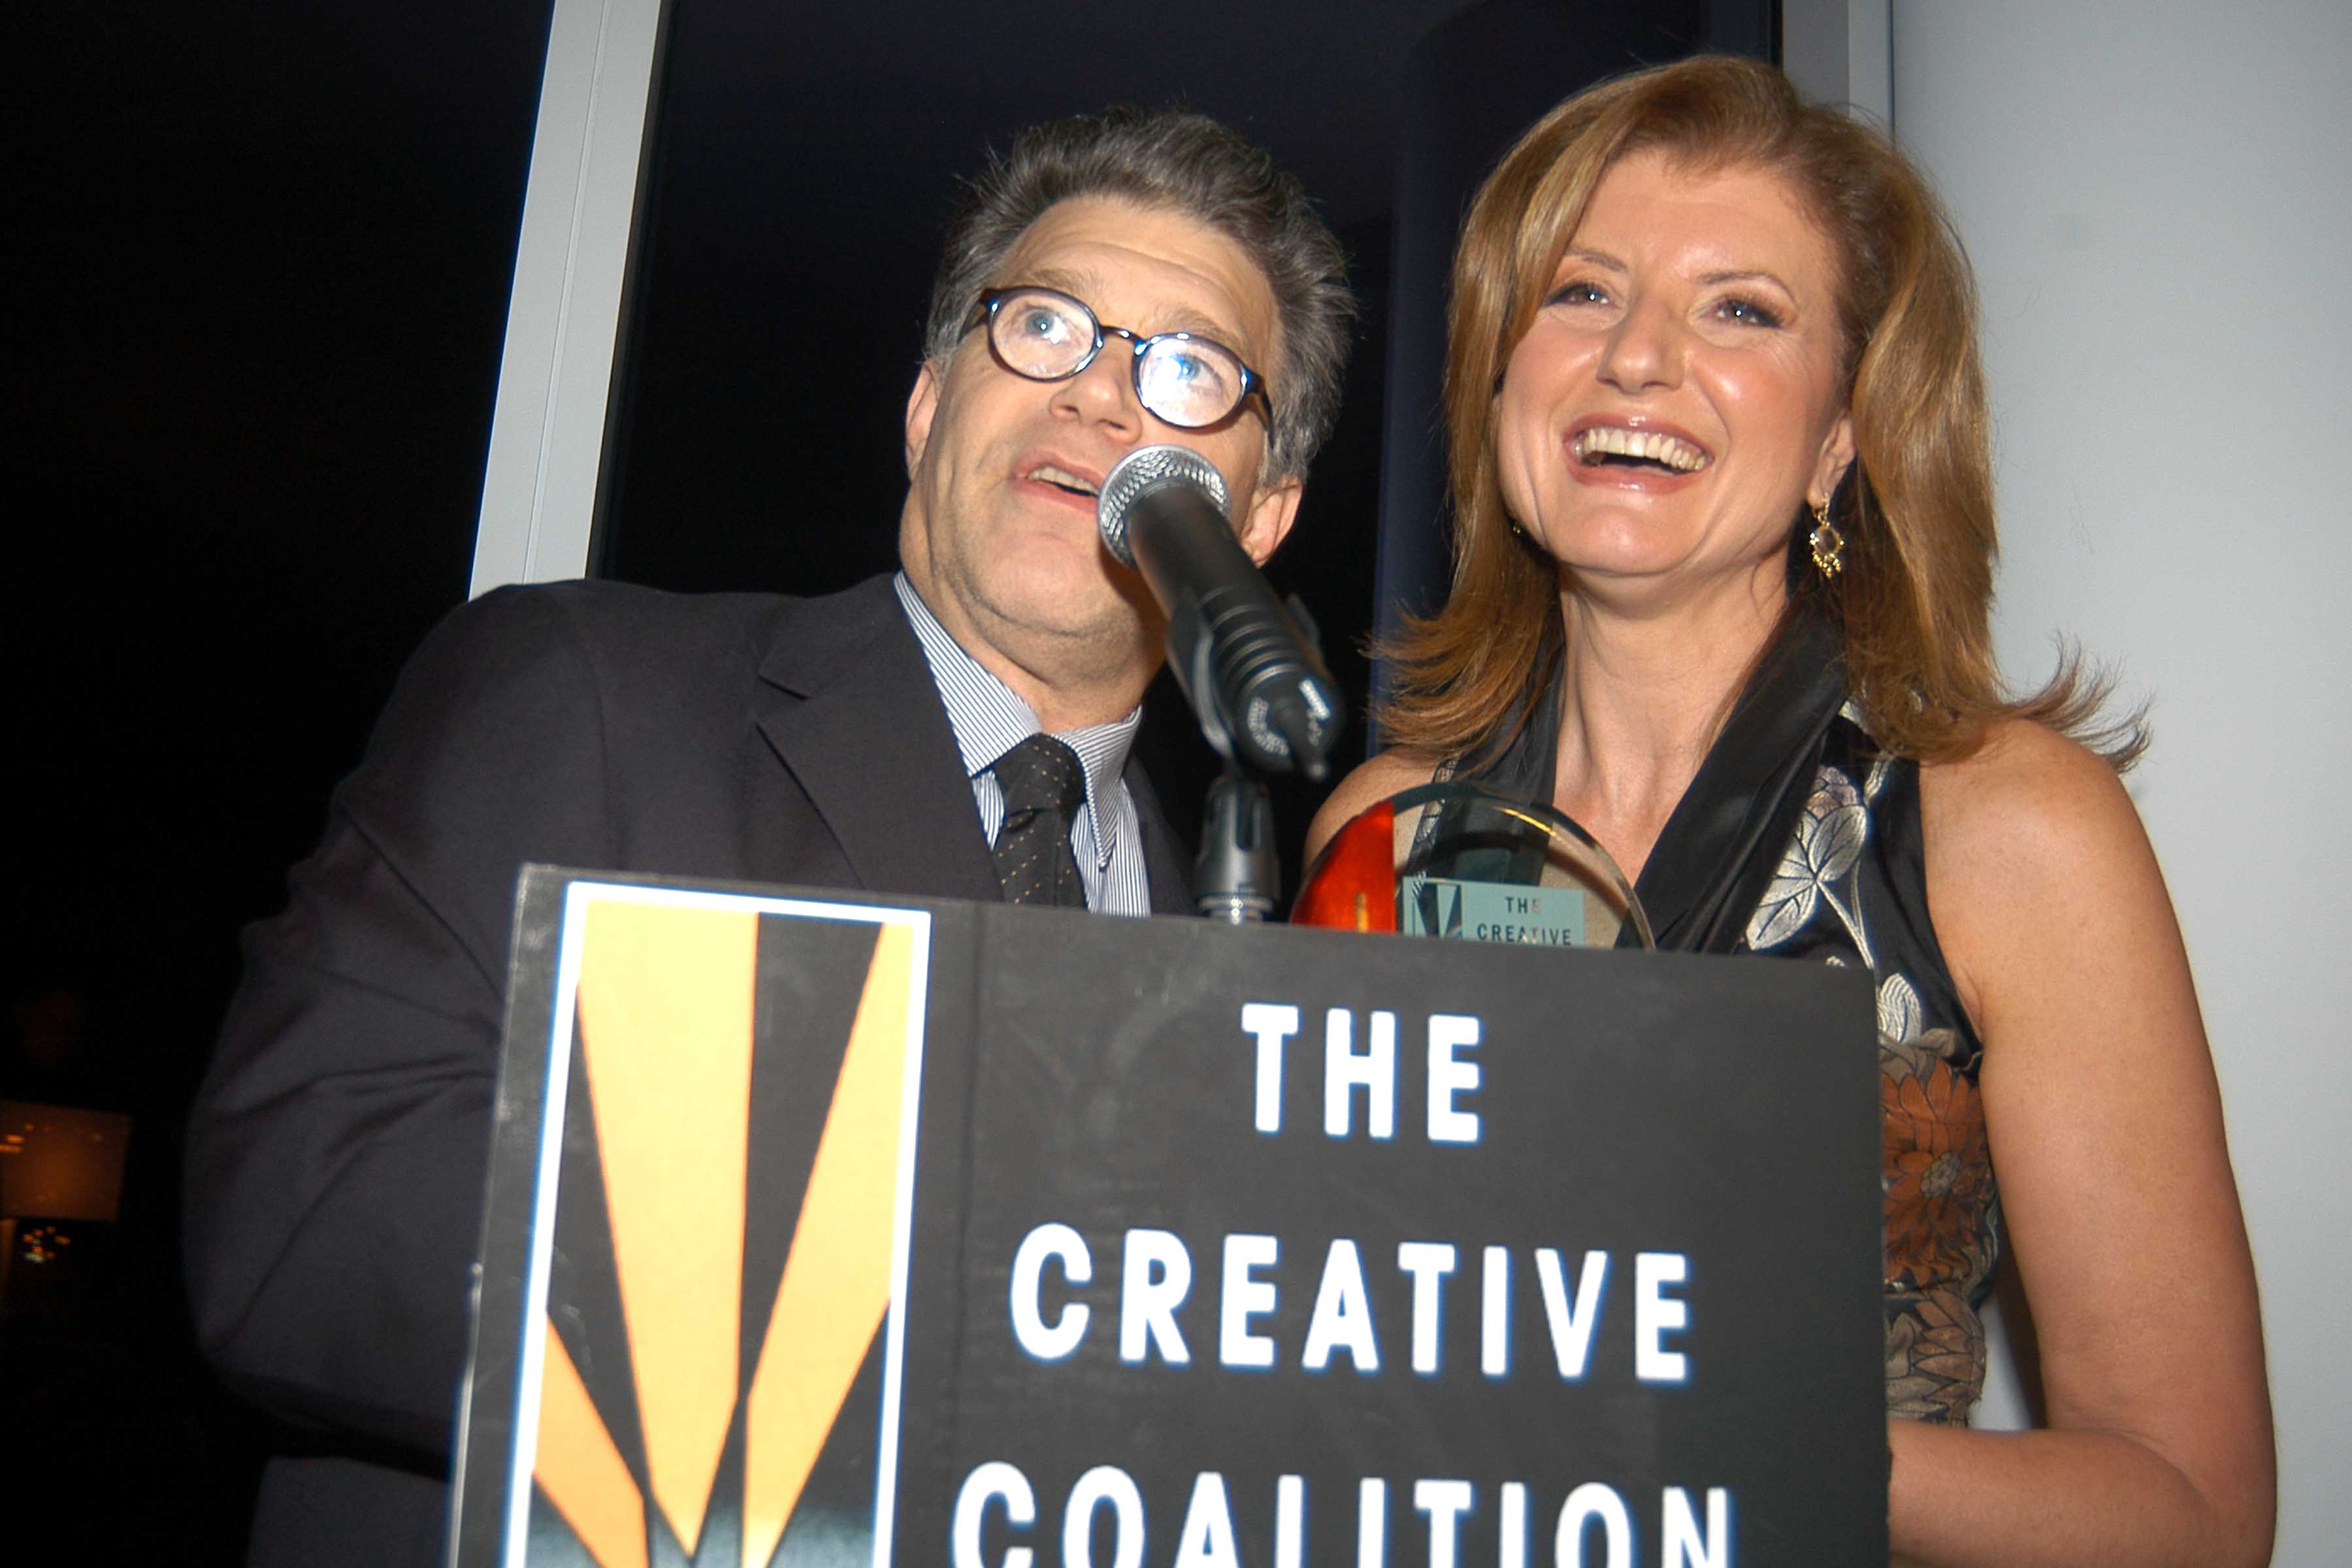 NOV. 10 2005: Al Franken and Arianna Huffington pictured together in 2005, five years after the pictures were taken